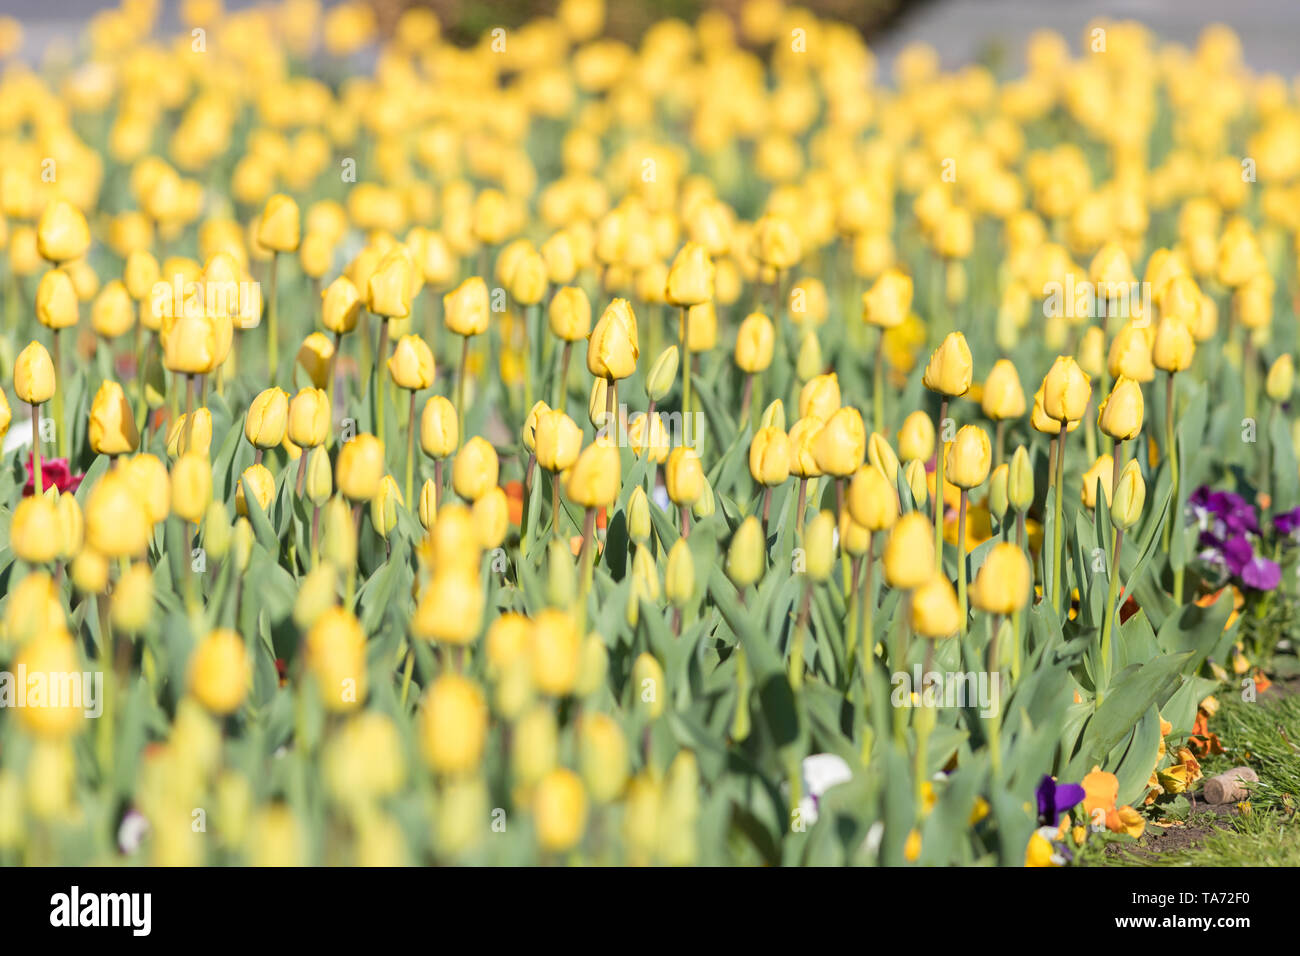 Yelow Tulips on the field with two puprle flowers, flower beds in outdoor Stock Photo